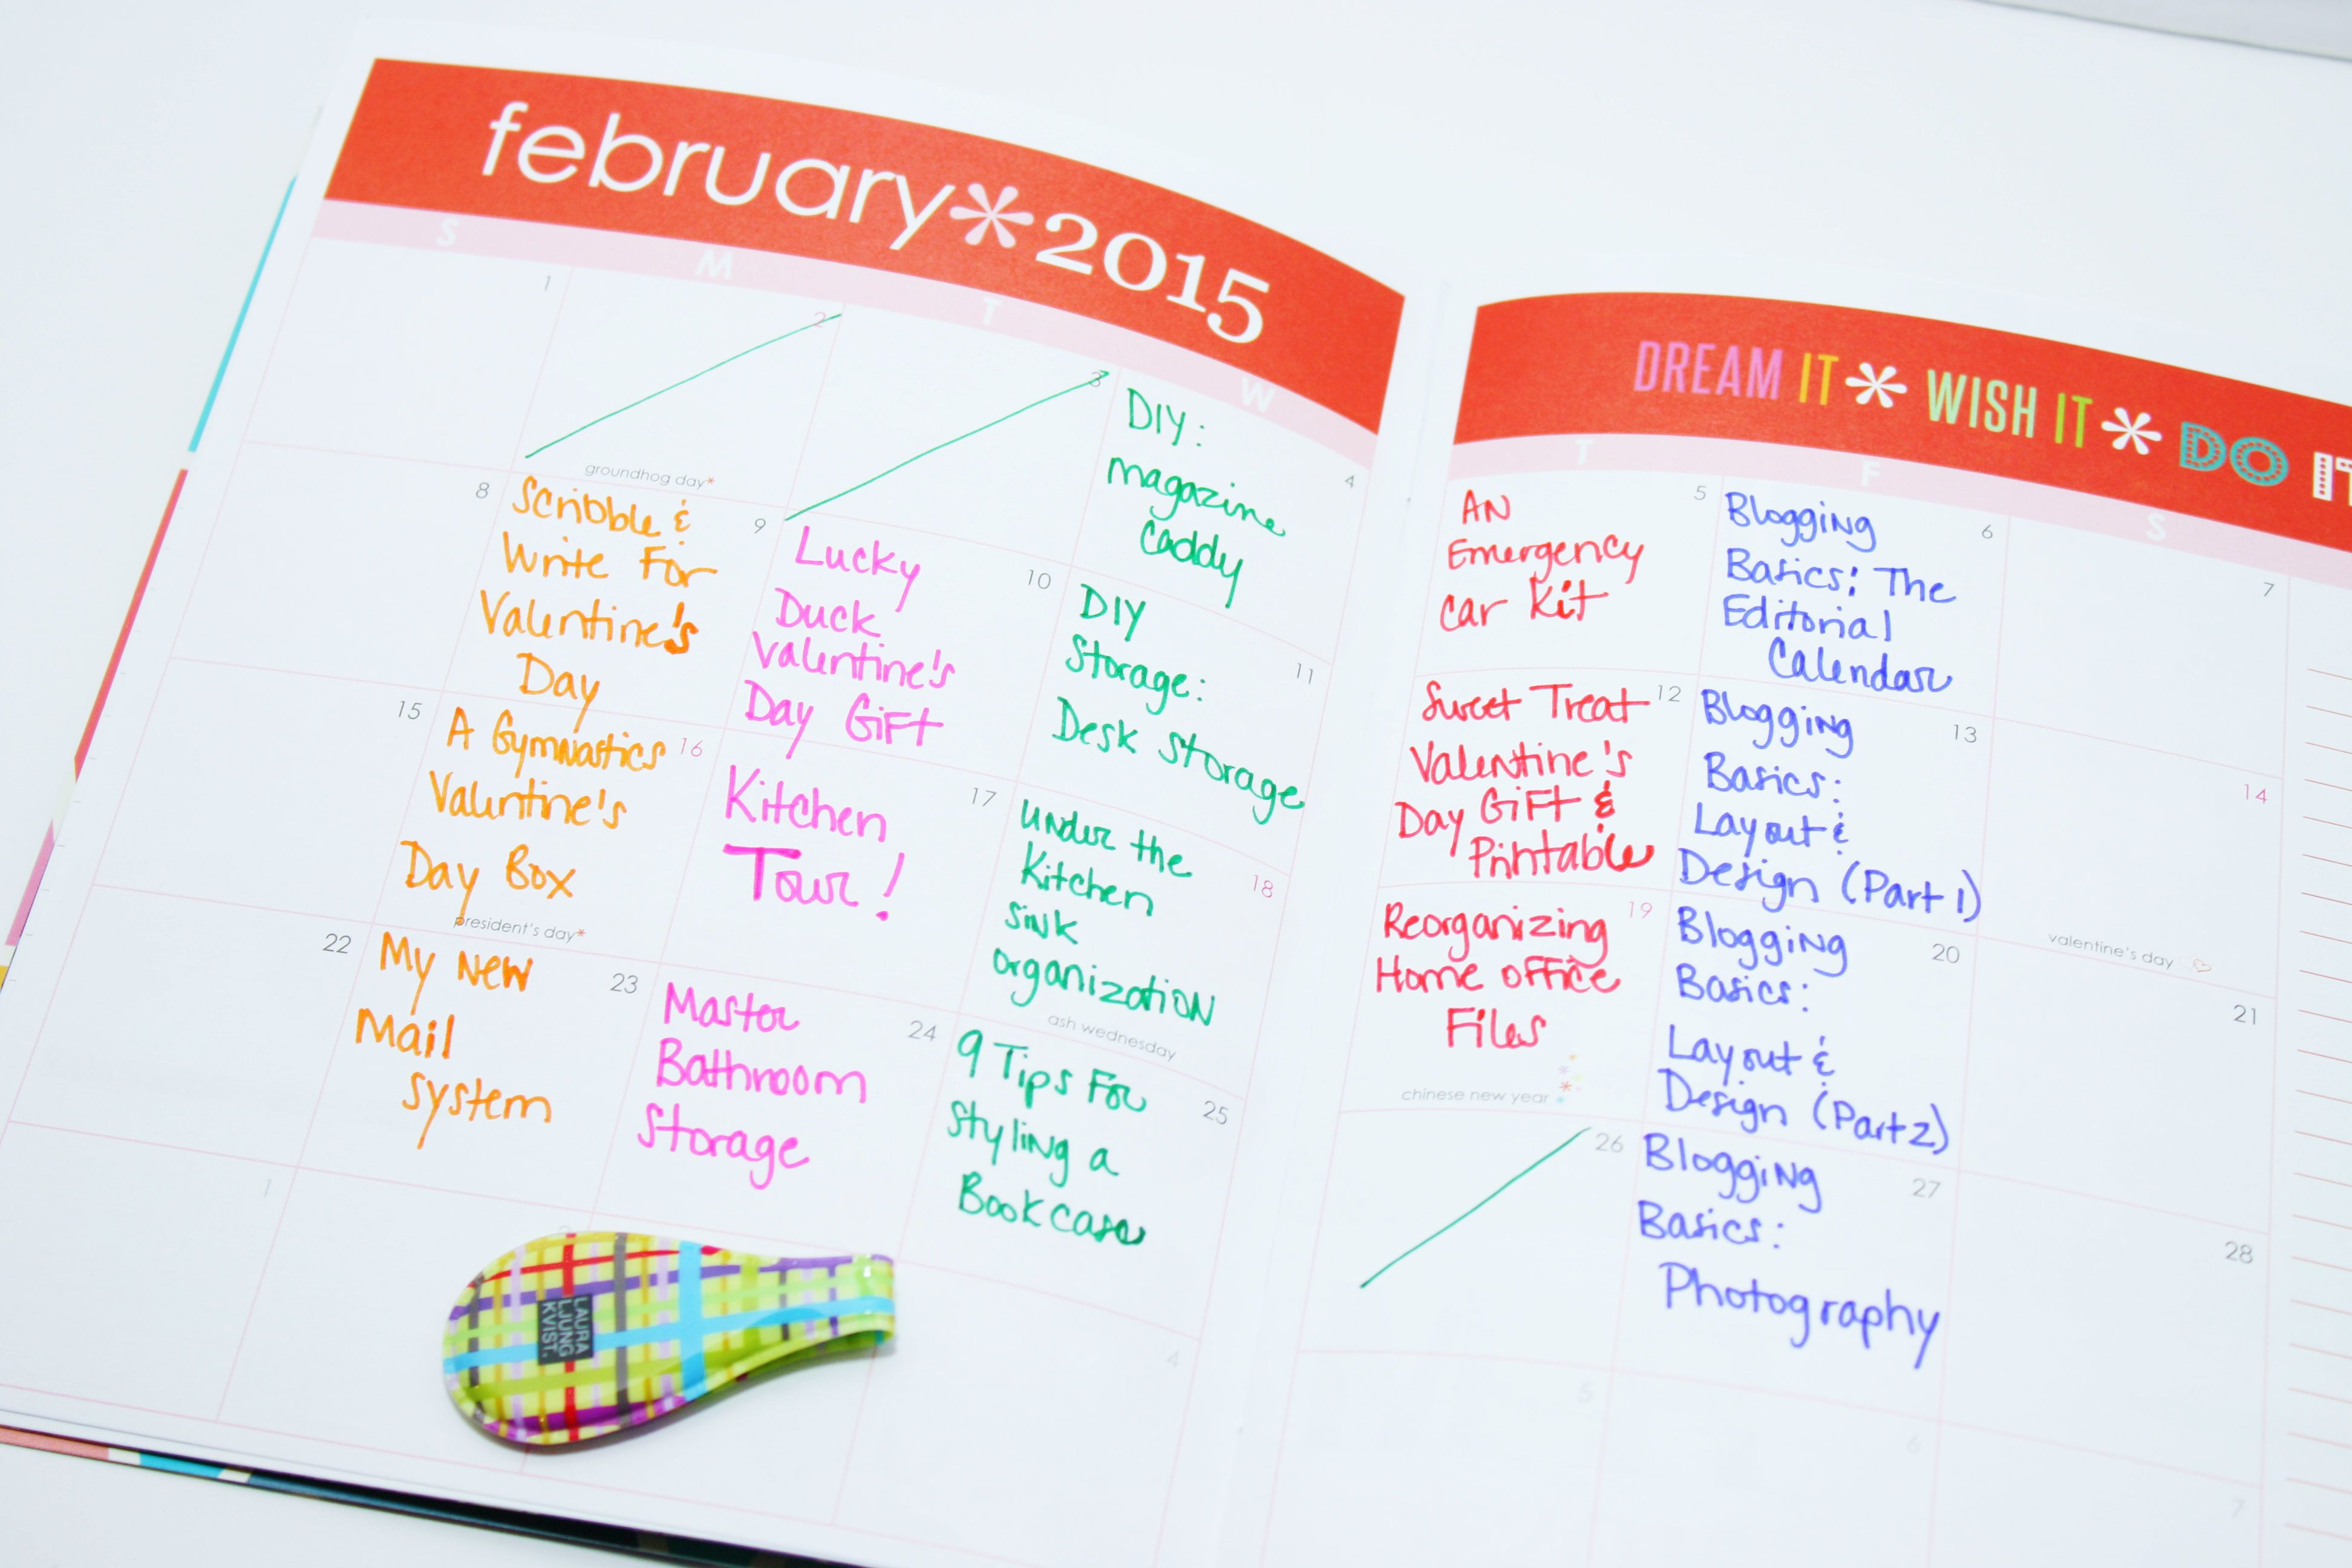 Monthly blog planning